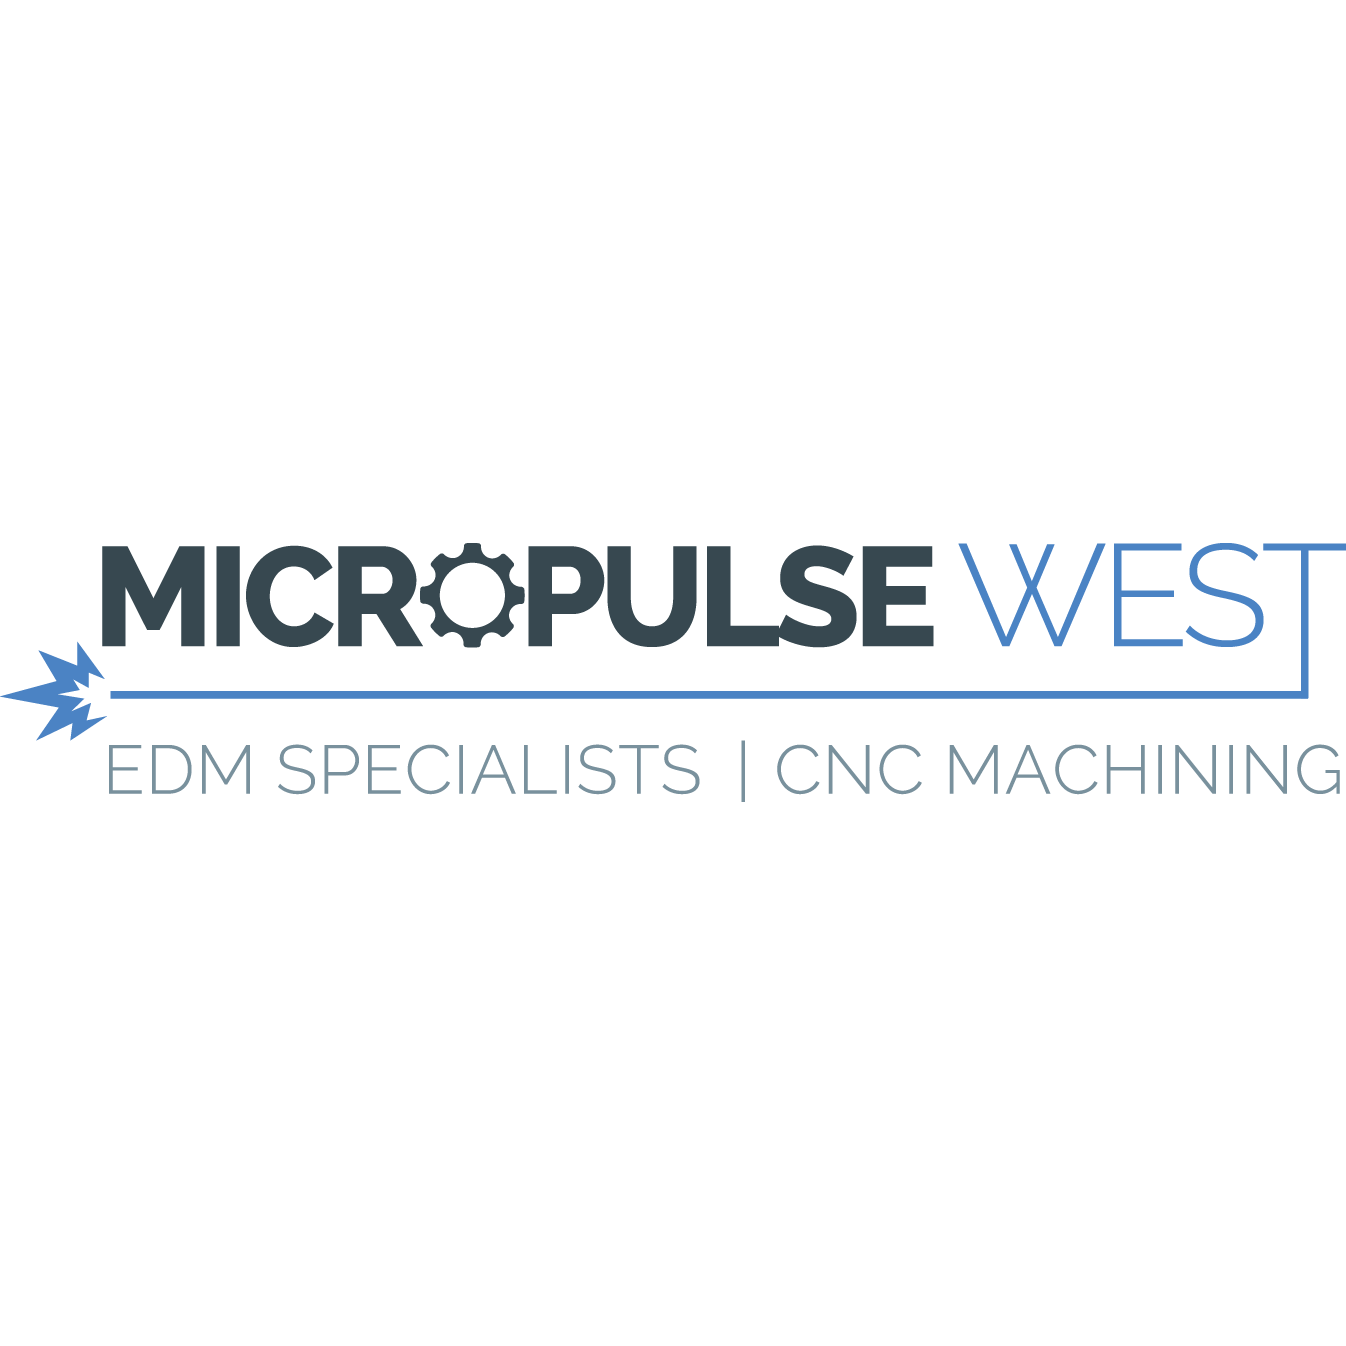 Micropulse West image 2